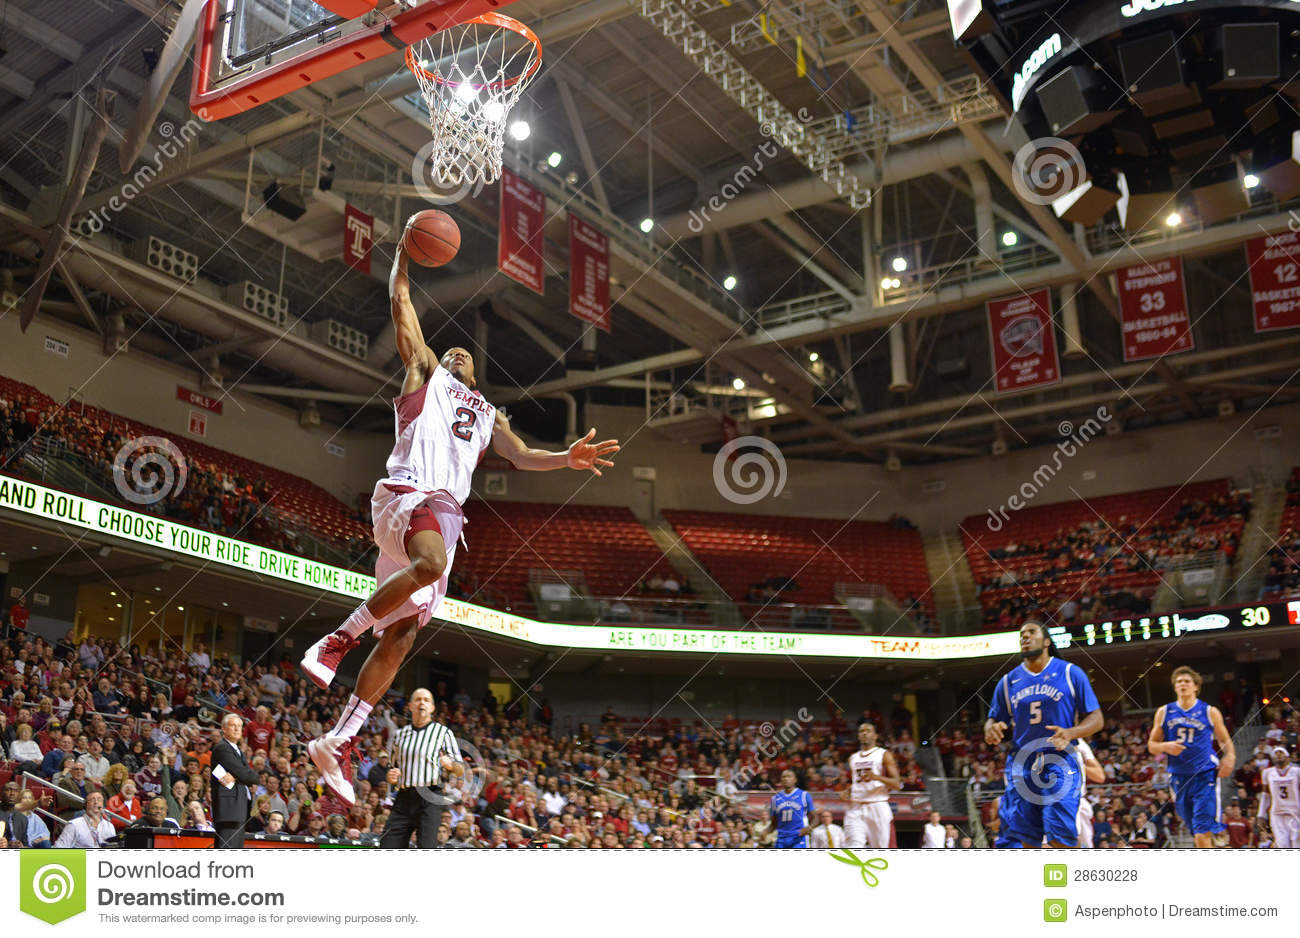 2013 basket-ball de NCAA - claquement trempez - angle faible